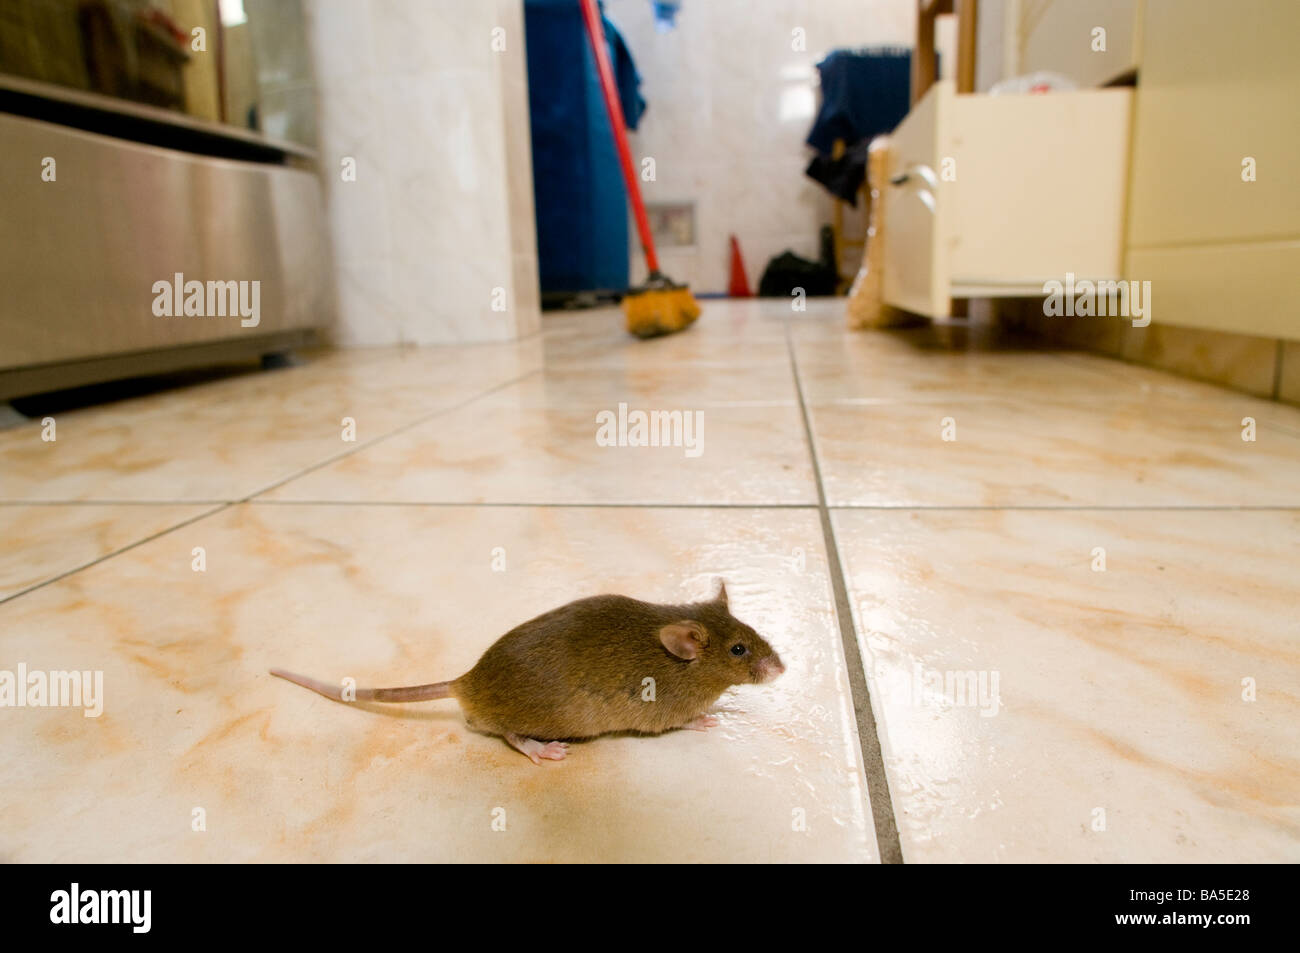 Mouse In Kitchen Stock Photo 23477728 Alamy